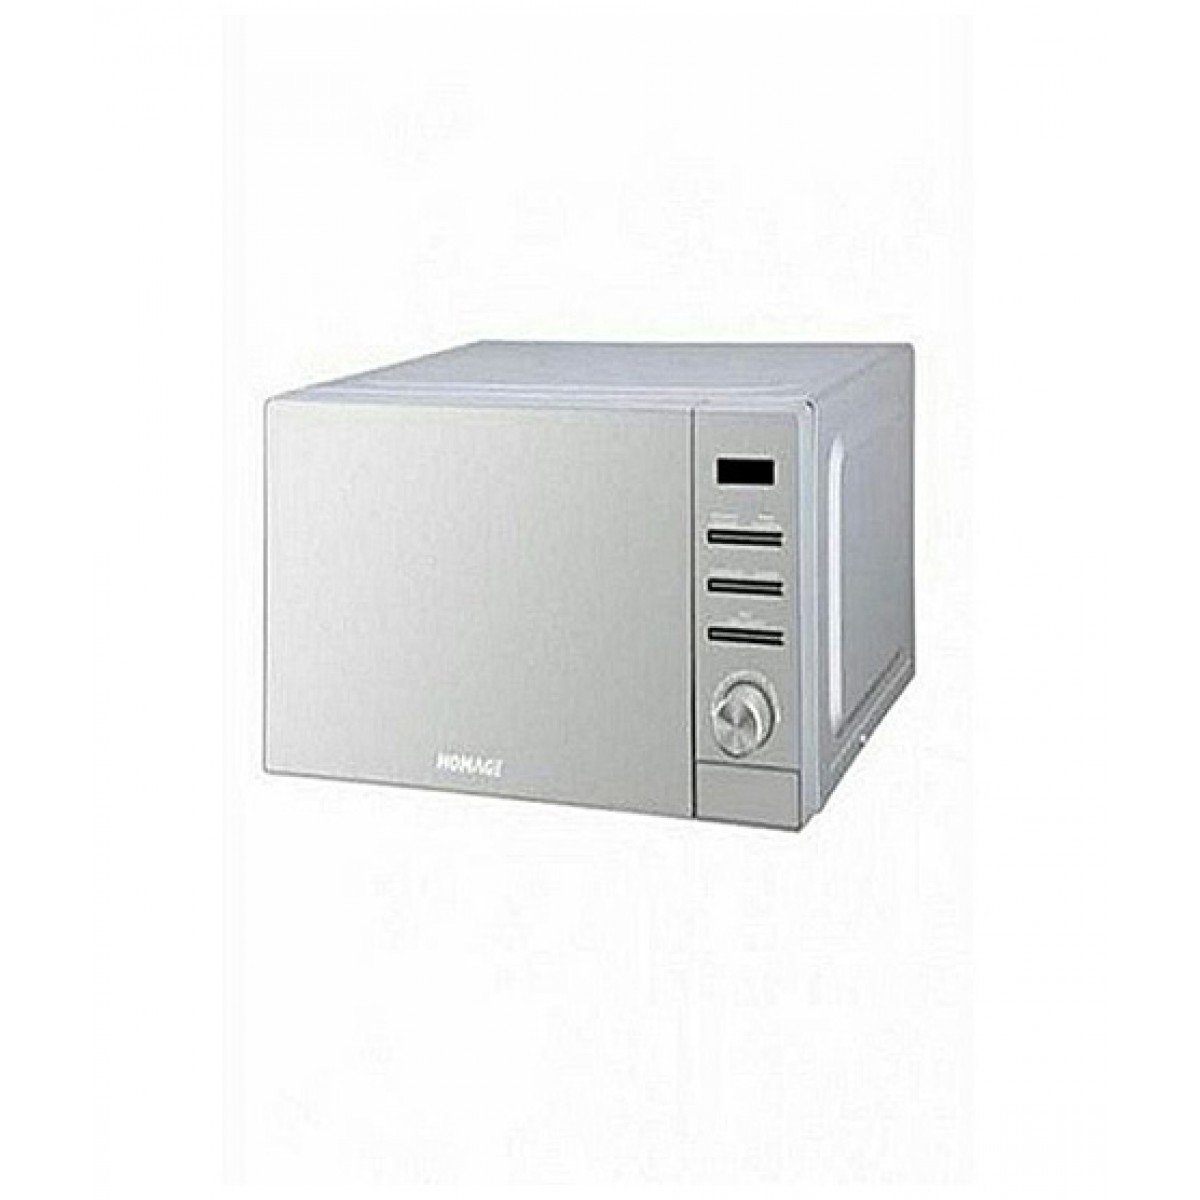 Homage Microwave Oven With Grill 20ltr White (HDG-2016W)